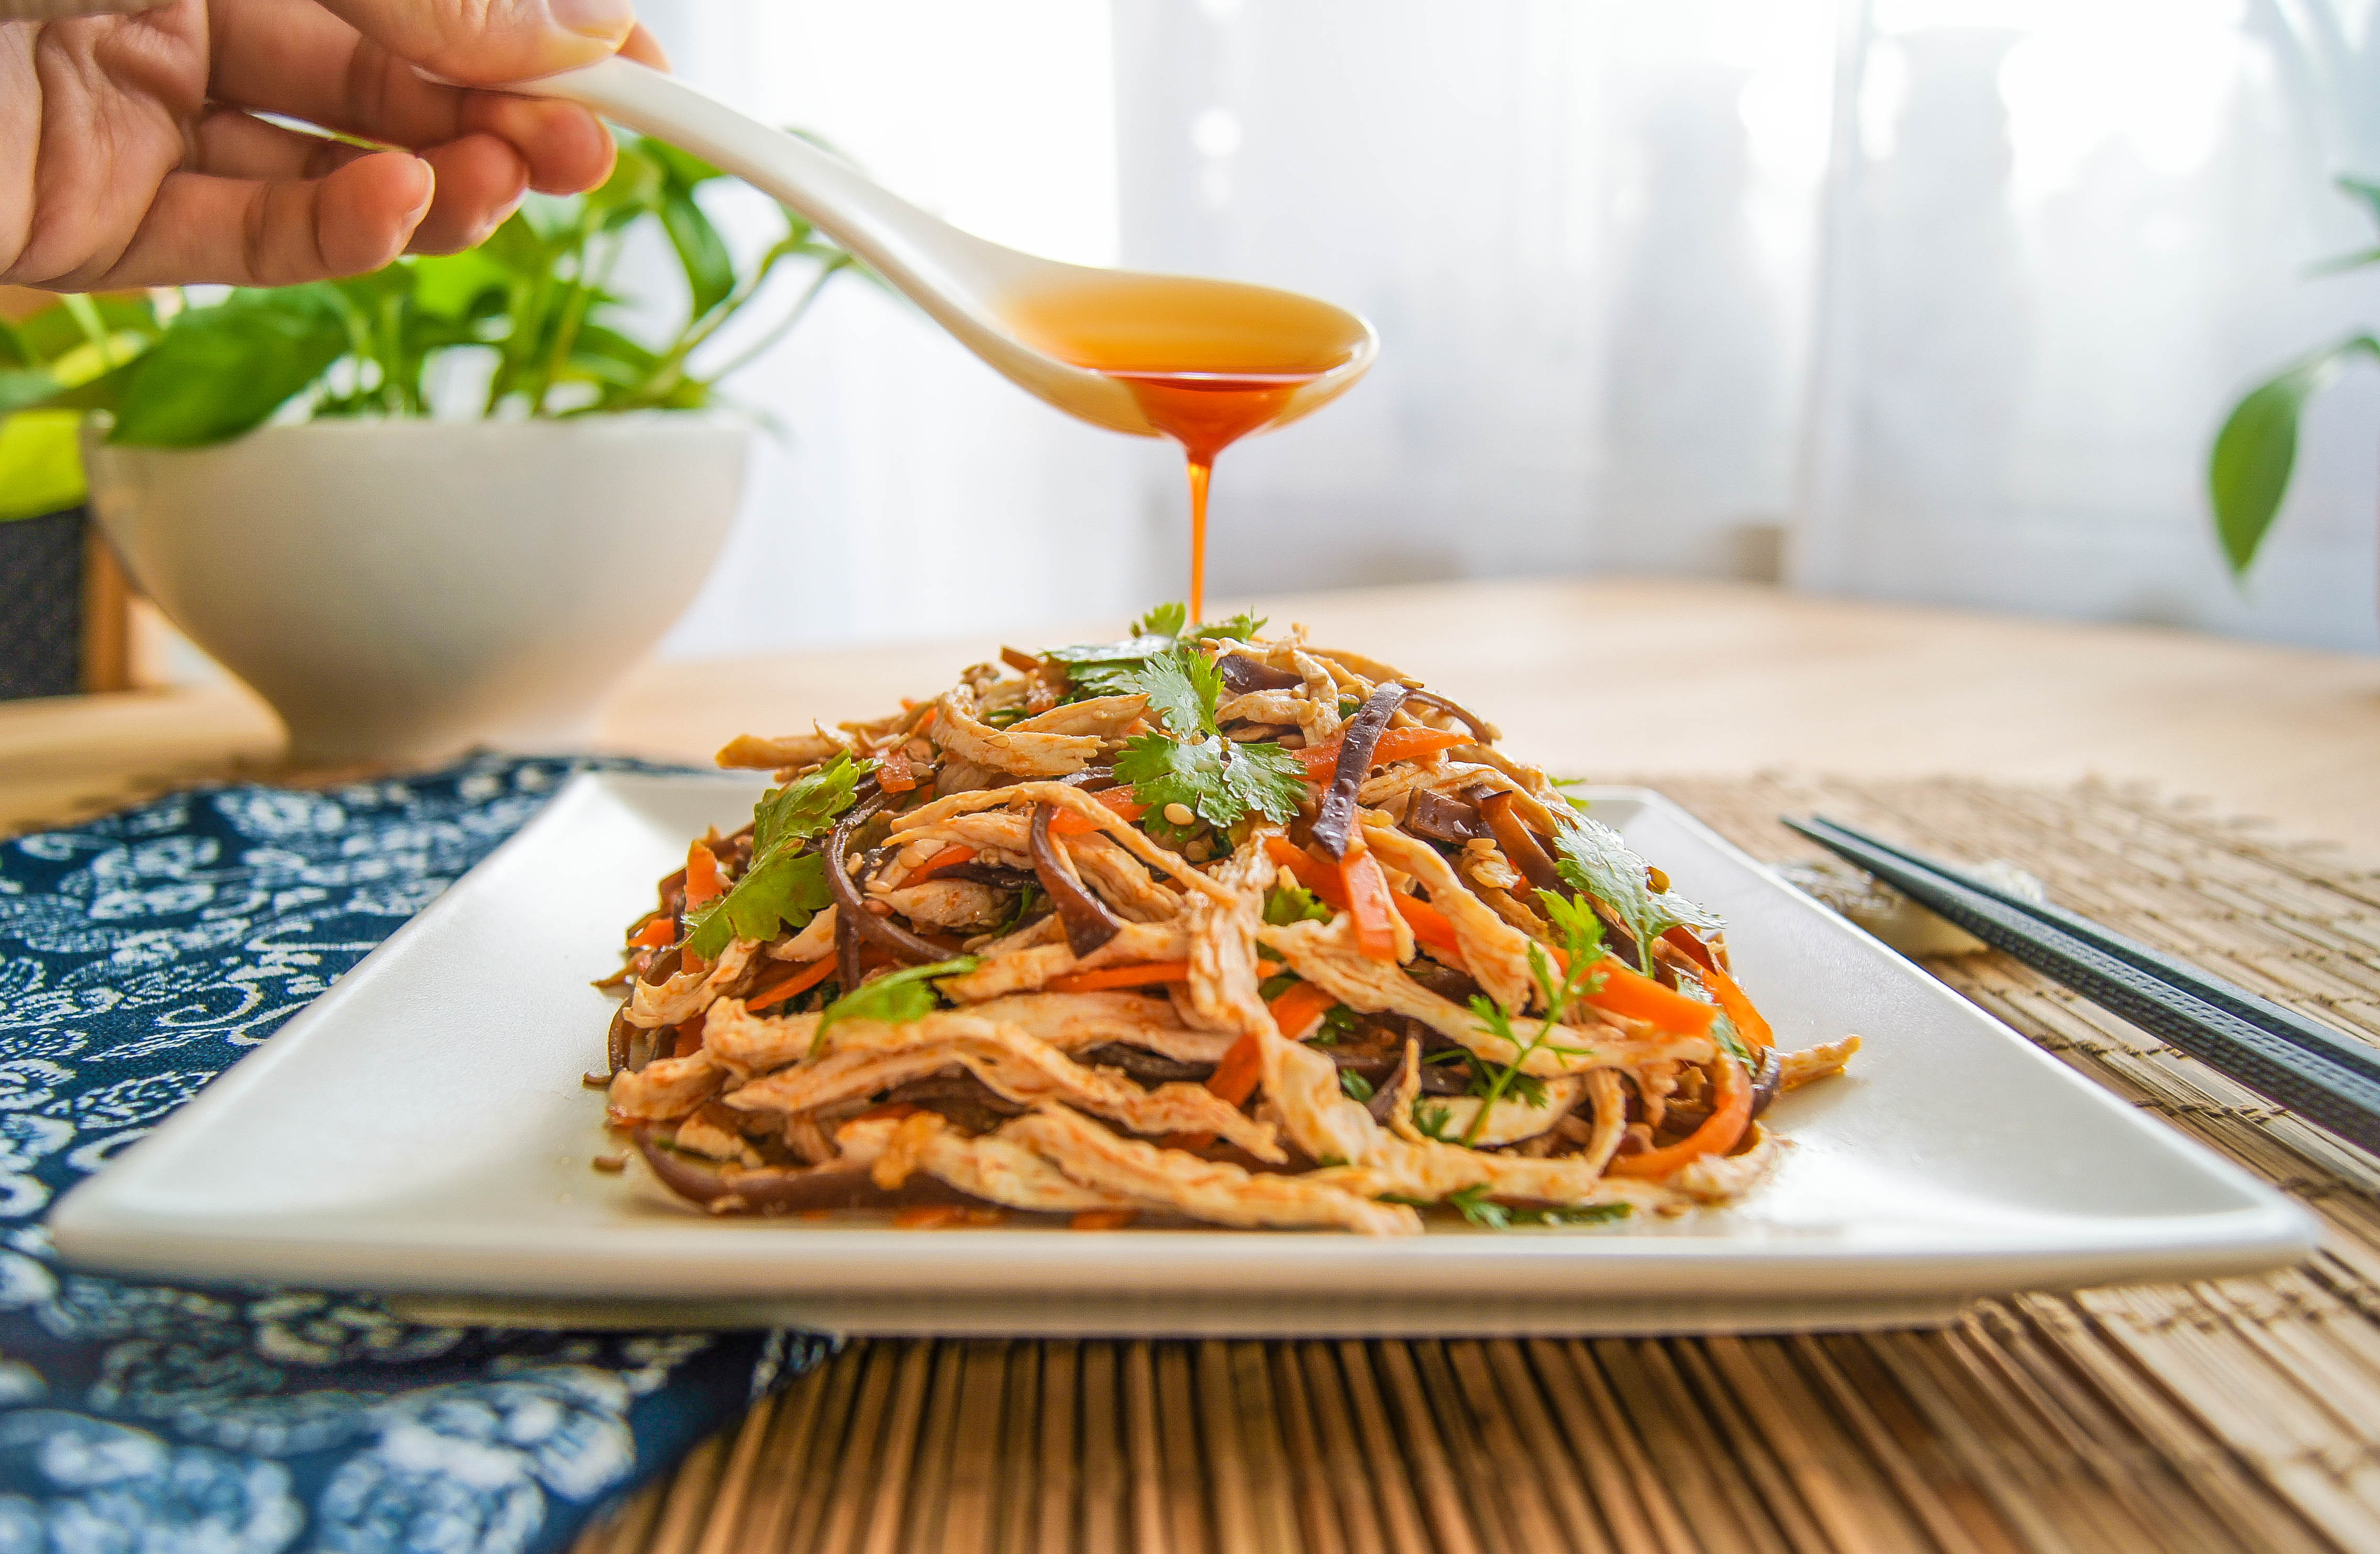 Shredded Chicken Salad with Red Chili Oil